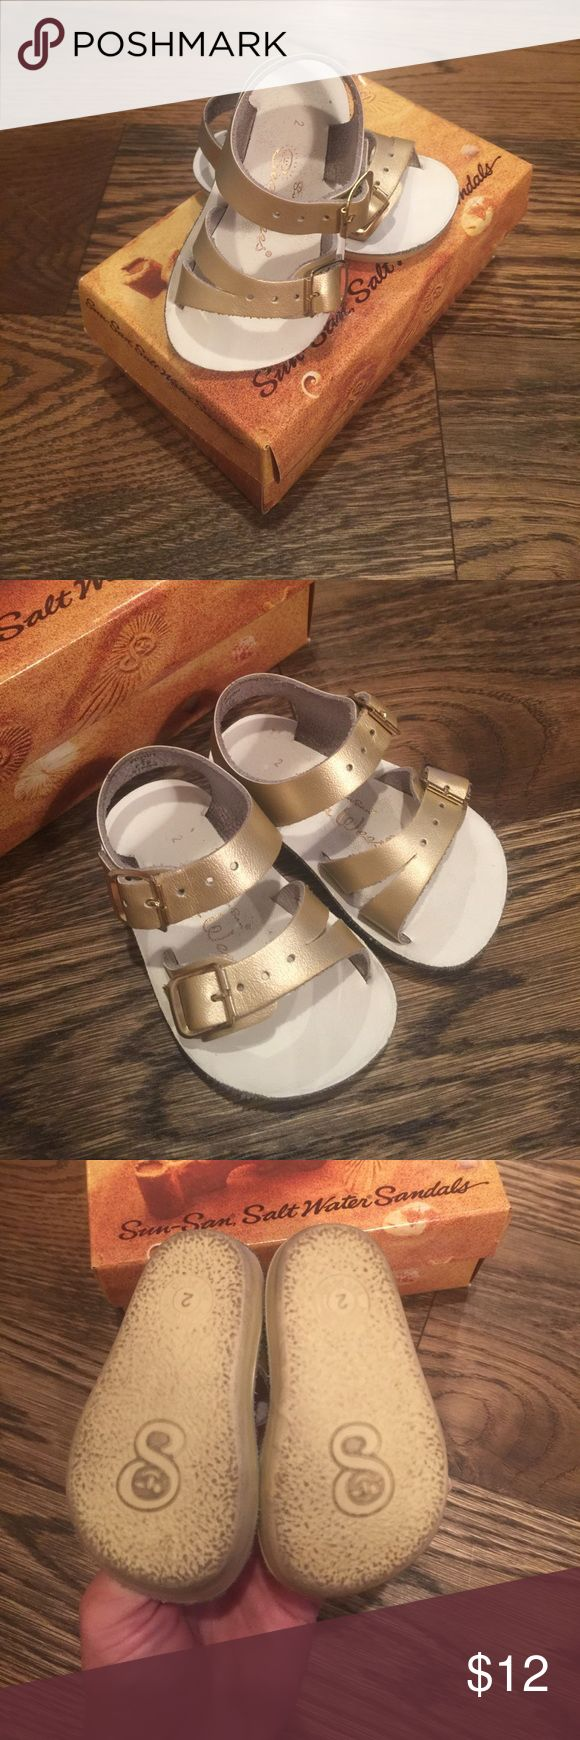 Salt Water Sandals size 2 gold Great used condition Salt Water Sandals size 2 worn by a walker. Salt Water Sandals by Hoy Shoes Sandals & Flip Flops